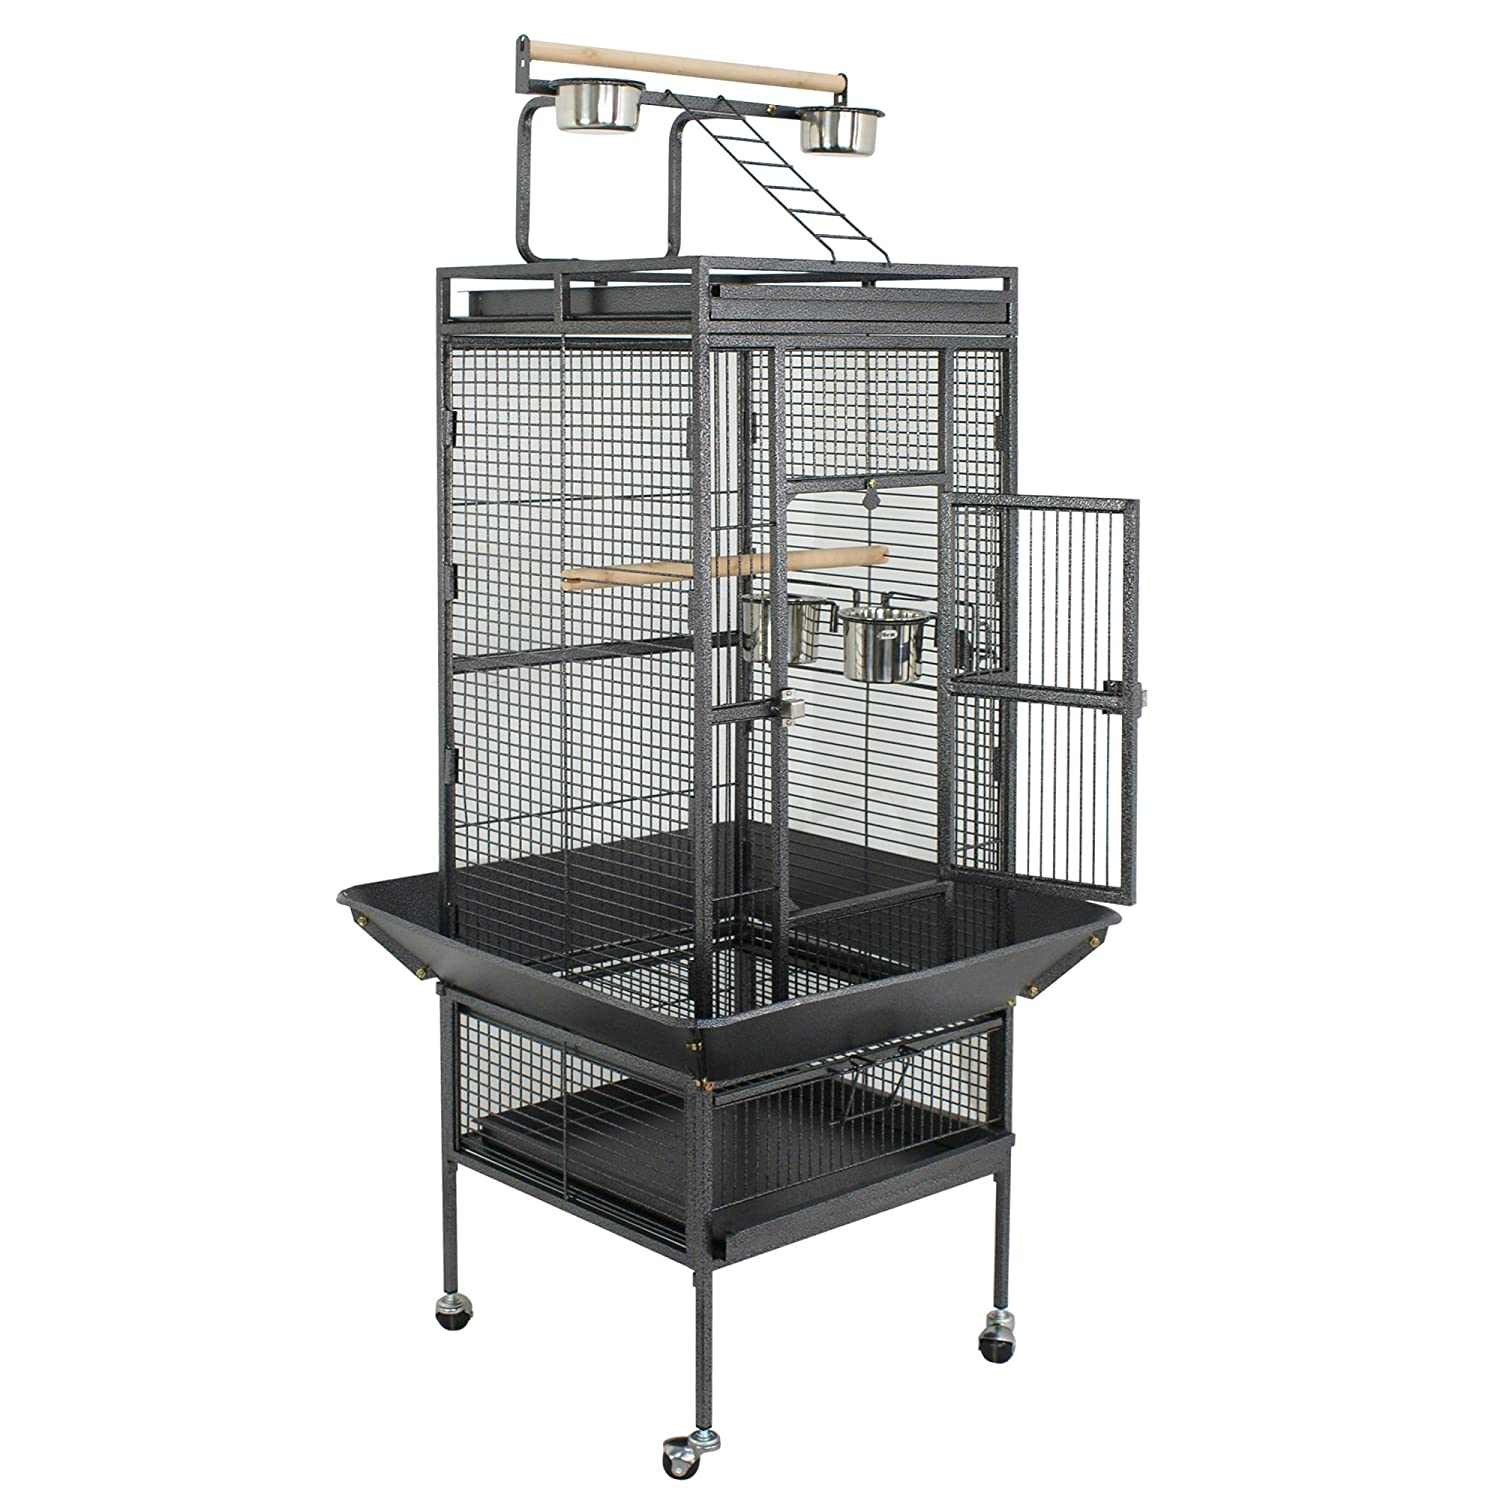 ZENY Bird Cage Wrought Iron 53/61/68-Inch Pet Bird CagePlay Top Parrot Cockatiel Cockatoo Parakeet Finches Birdcage